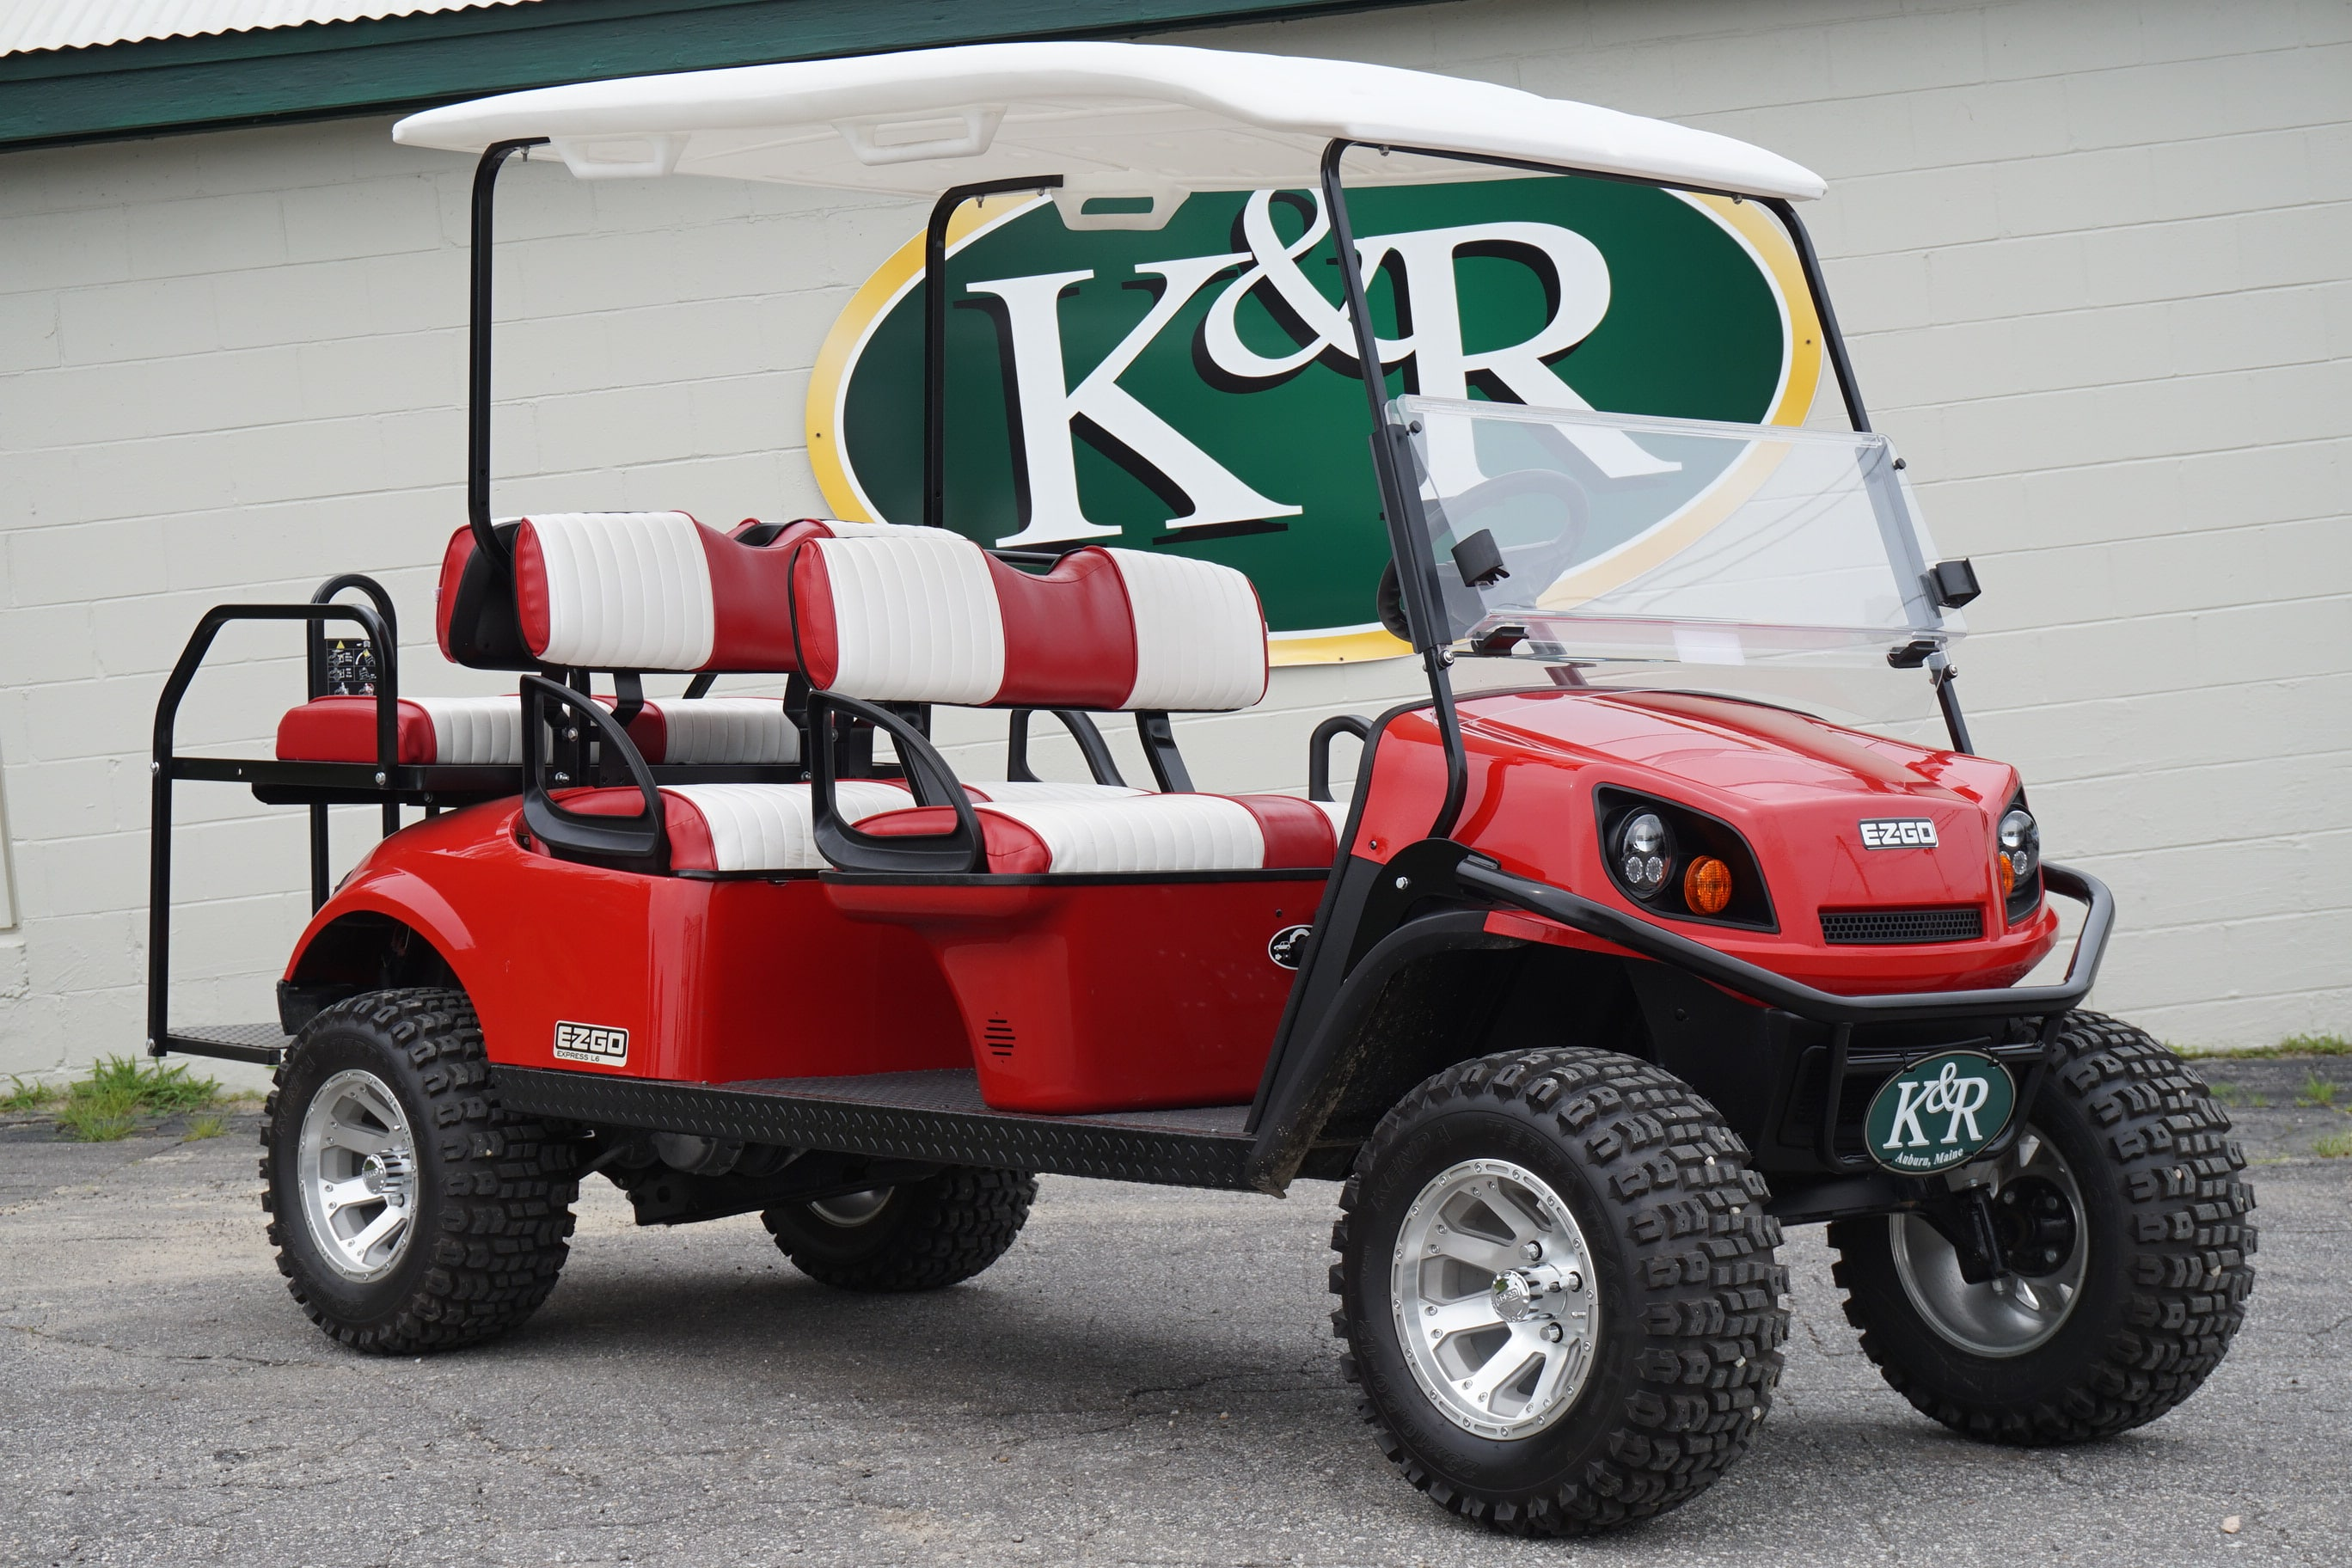 2016 ezgo golf cart people carrier 6 passenger pact